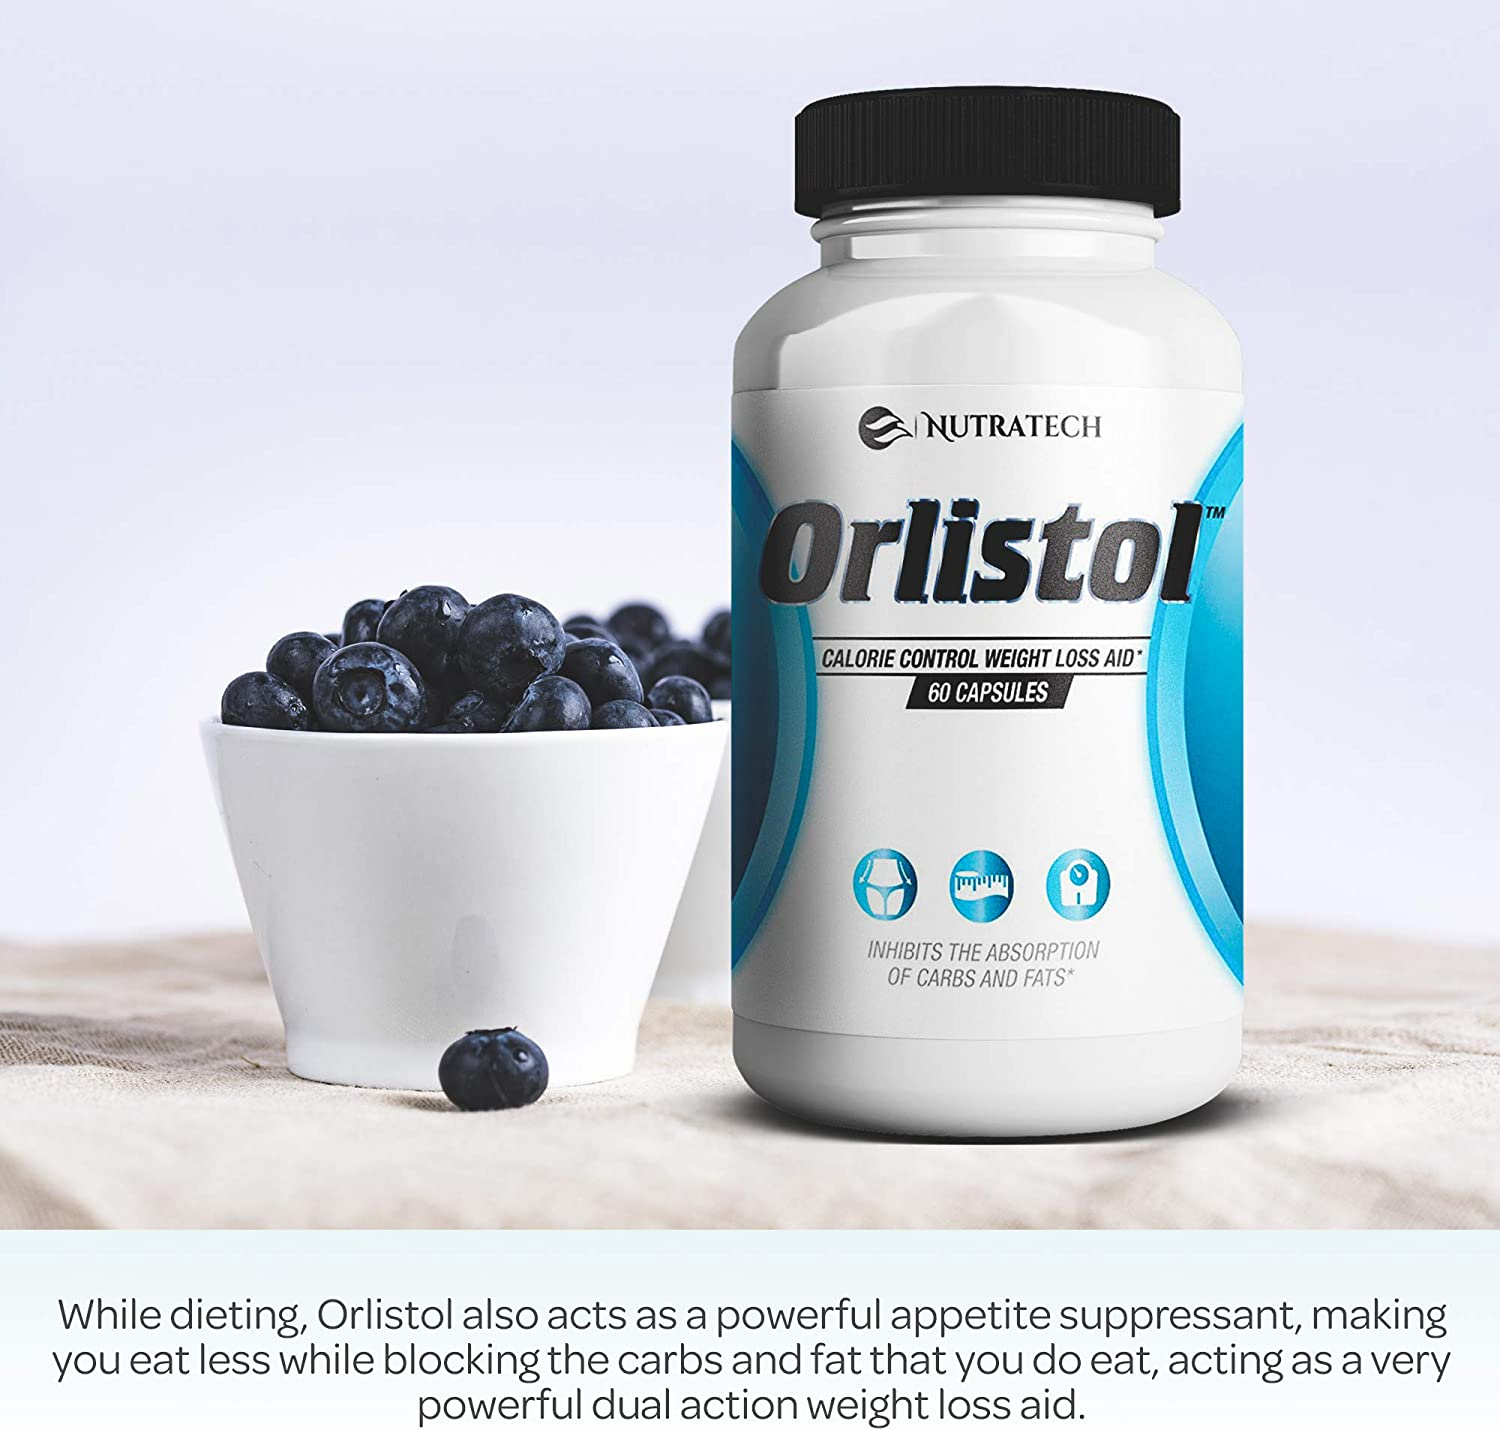 Nutratech Orlistol - Carb and Fat Blocker Weight Loss Aid and Diet Pill for Powerful Fat Burning and Appetite Suppression. Excellent for Keto Diet to Get Back into Ketosis Quickly. 60 Count.